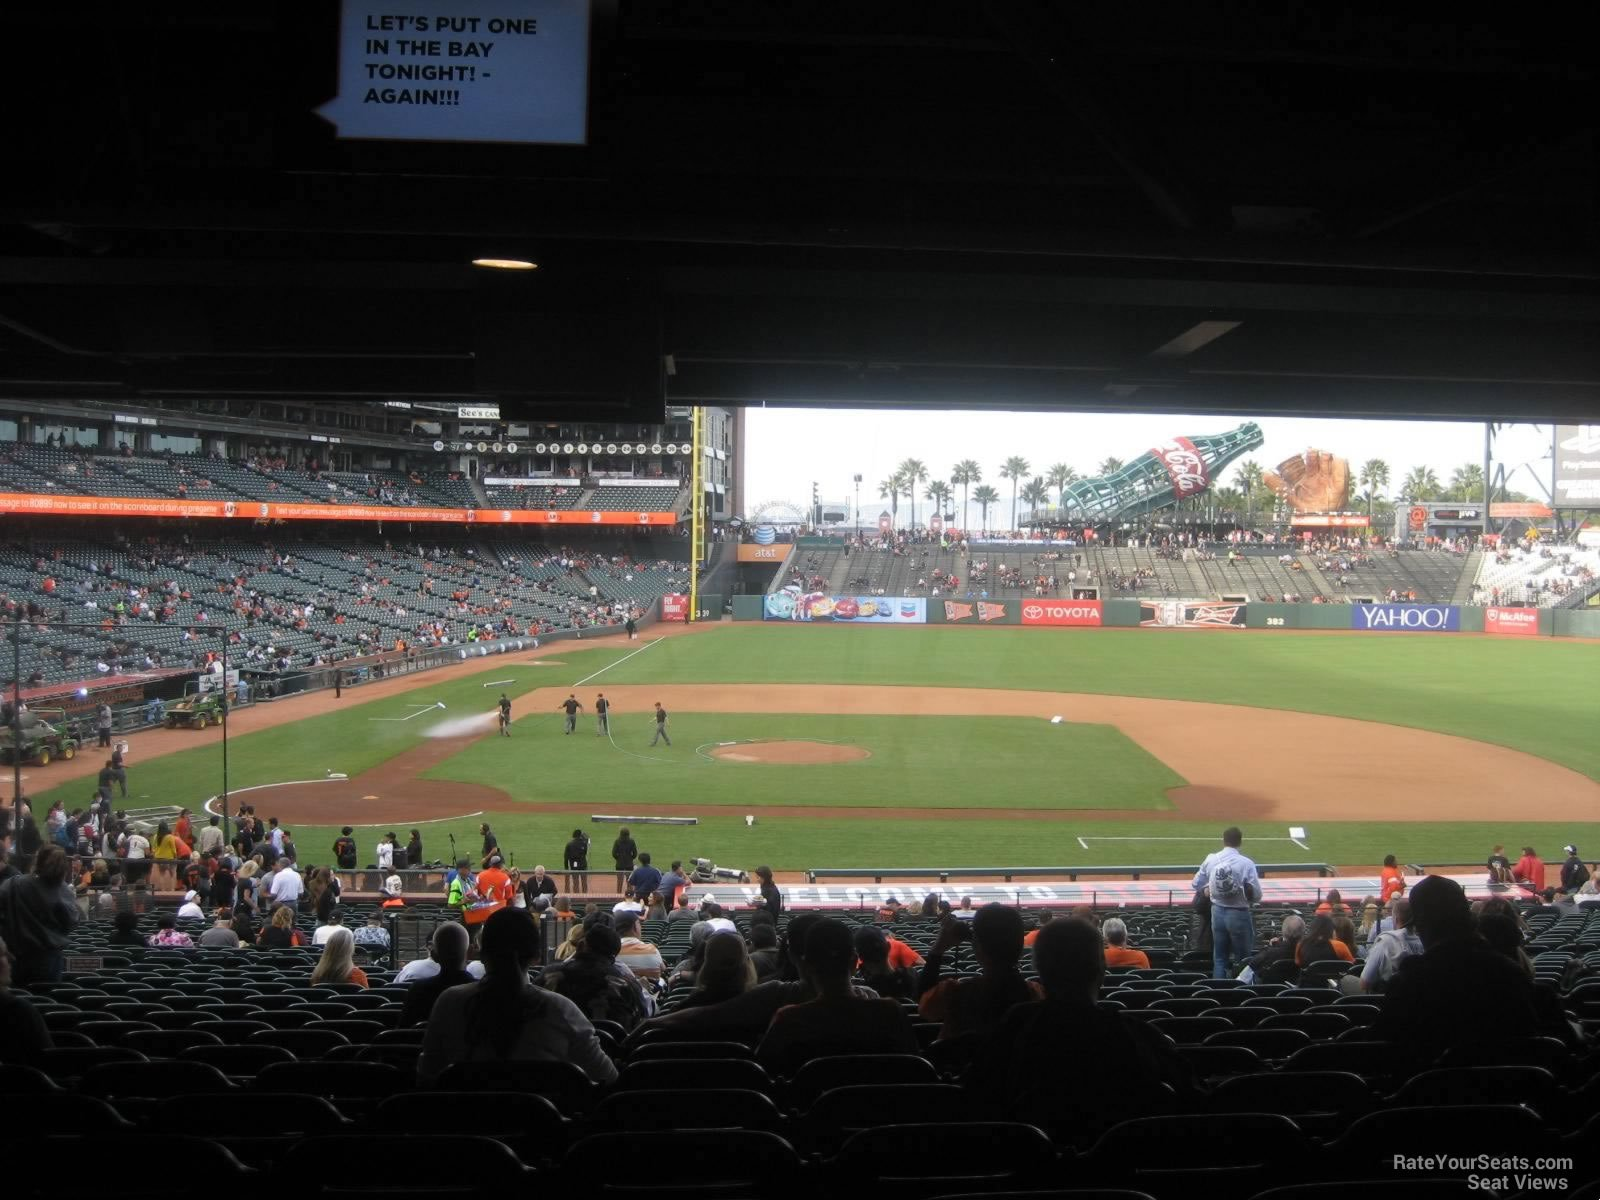 Section 109 View